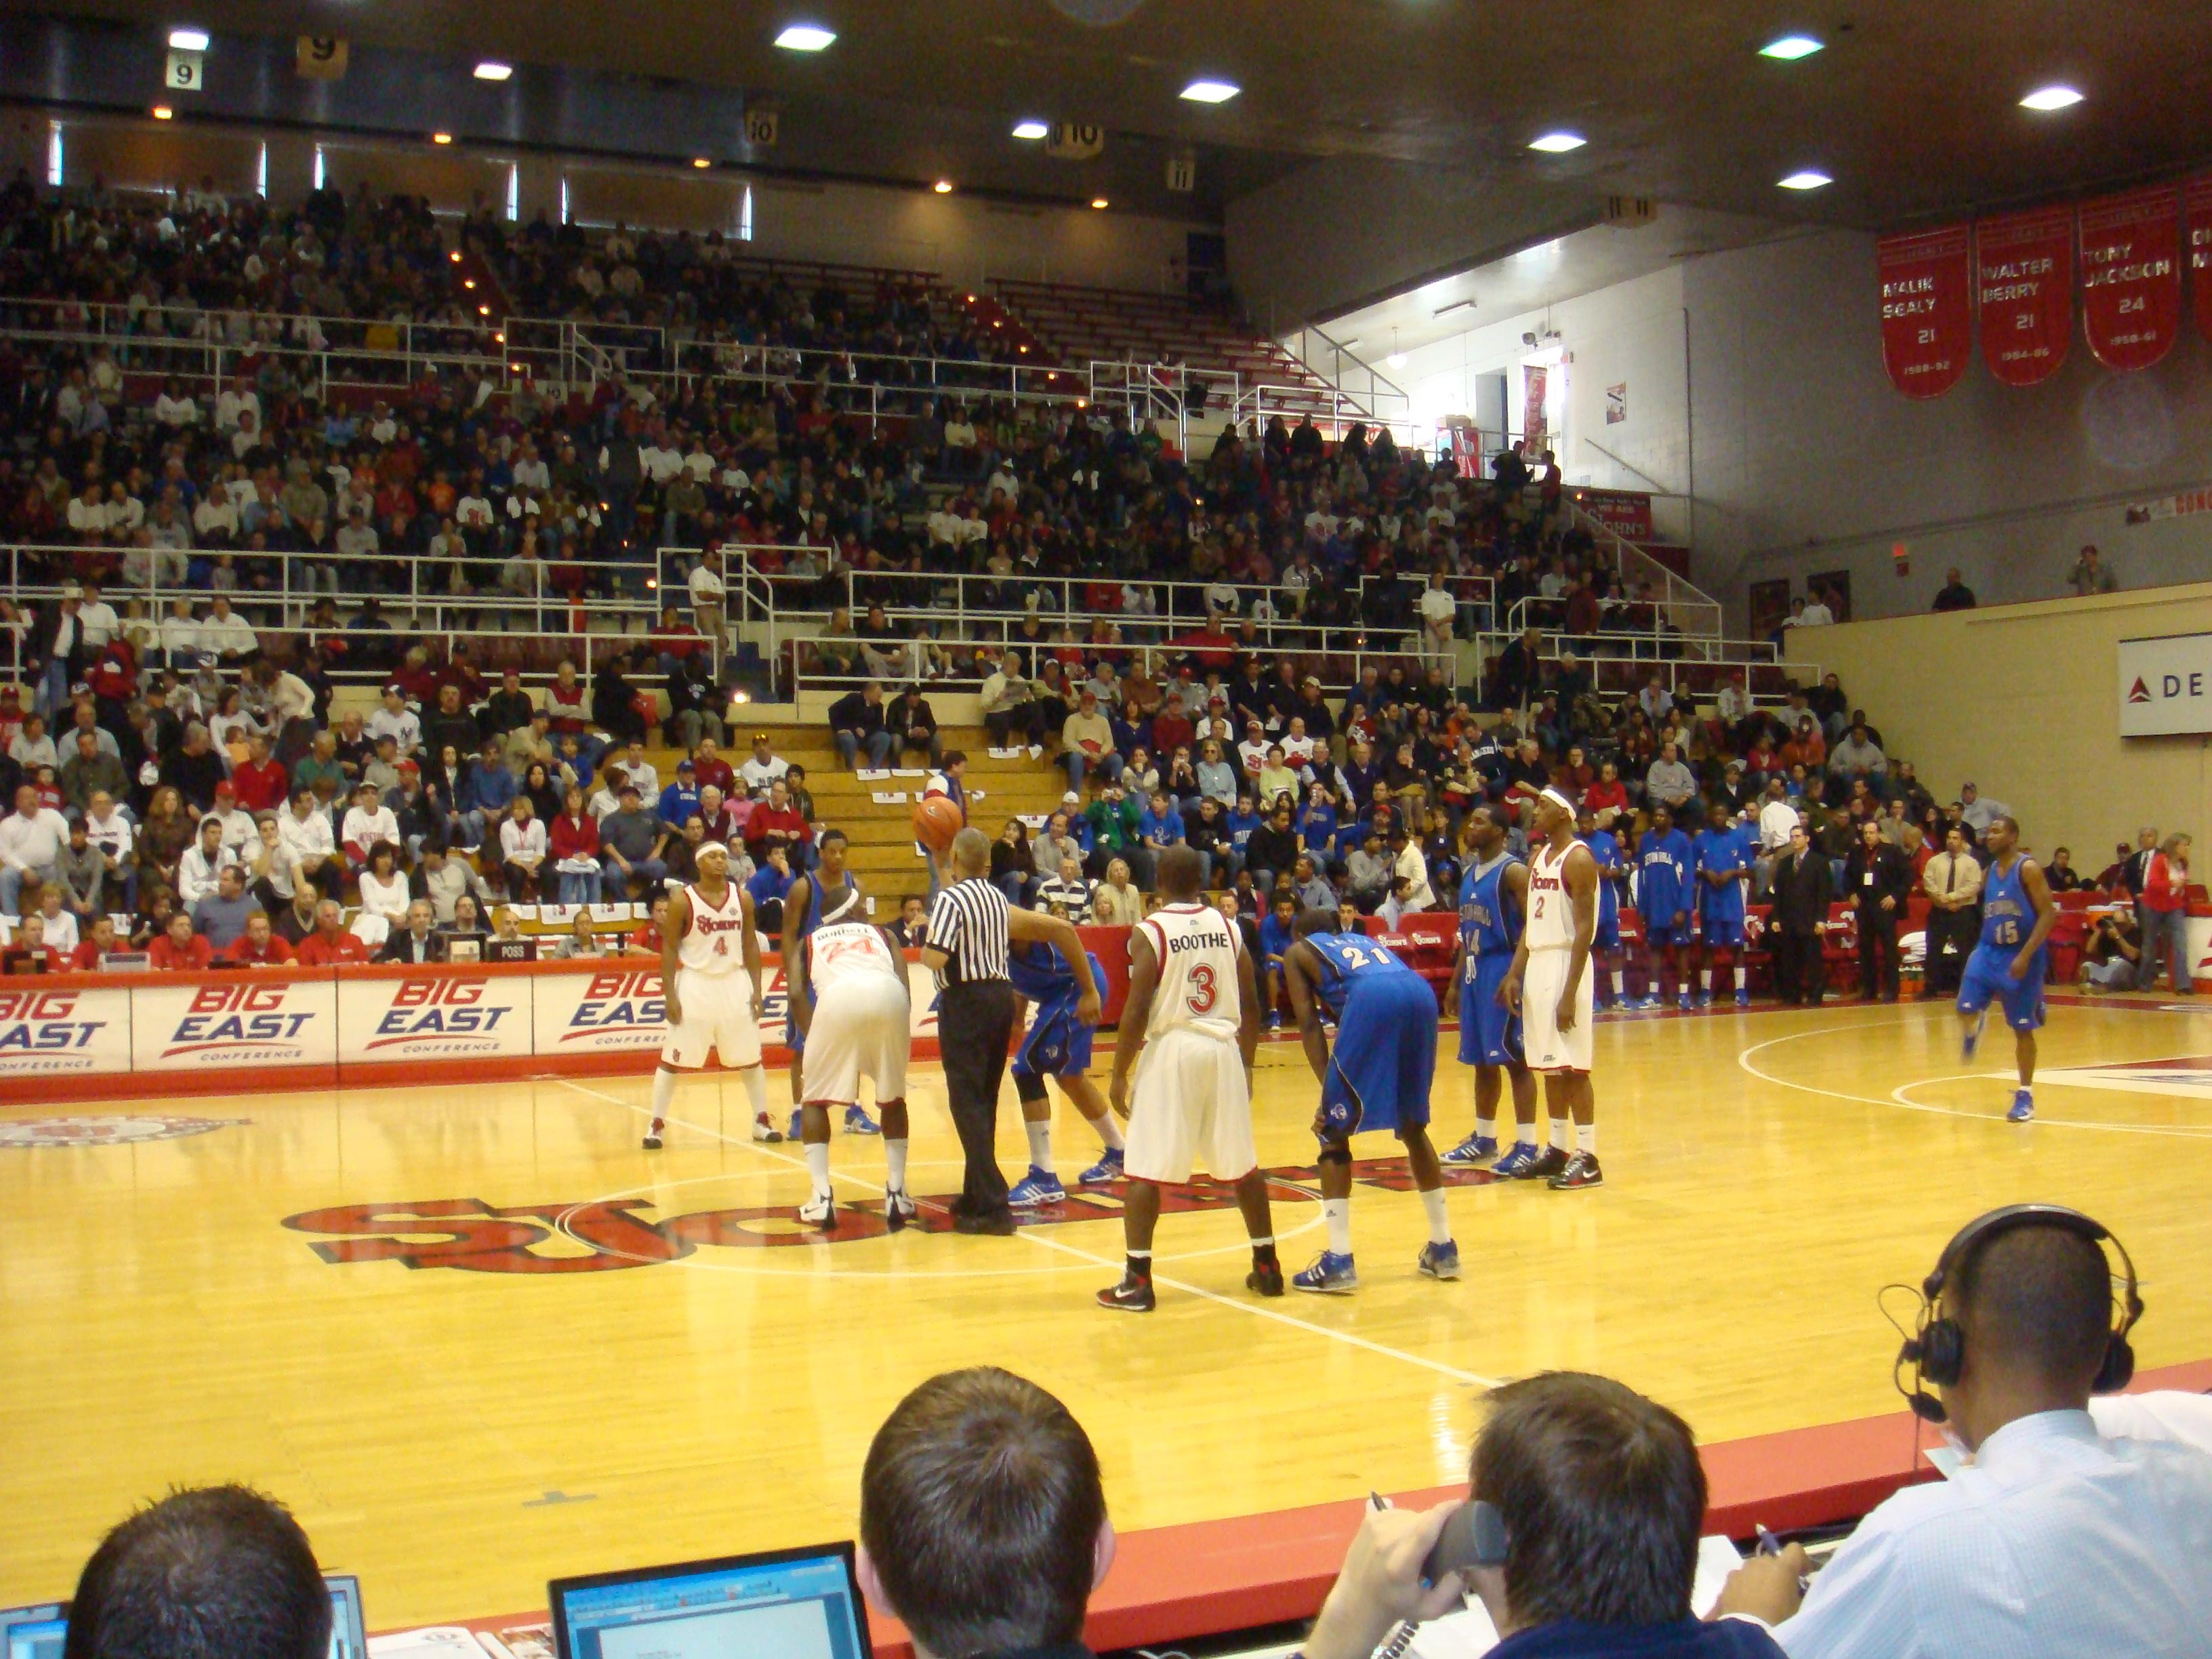 Carnesecca Arena Section 3 Row CC Seat 20